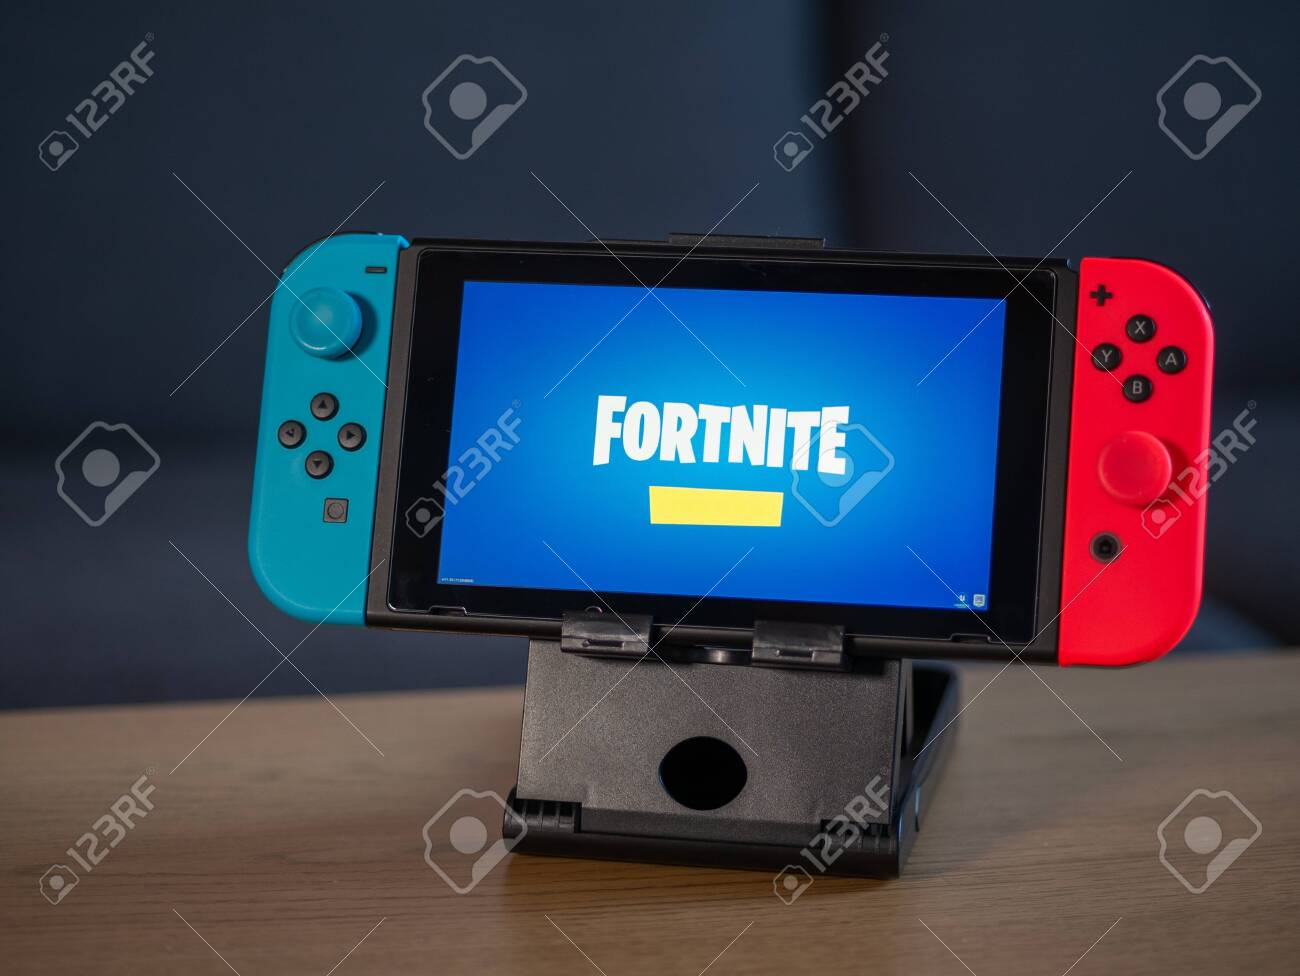 Uk Feb 2020 Nintendo Switch With Fortnite Game Logo On Screen Stock Photo Picture And Royalty Free Image Image 141403136